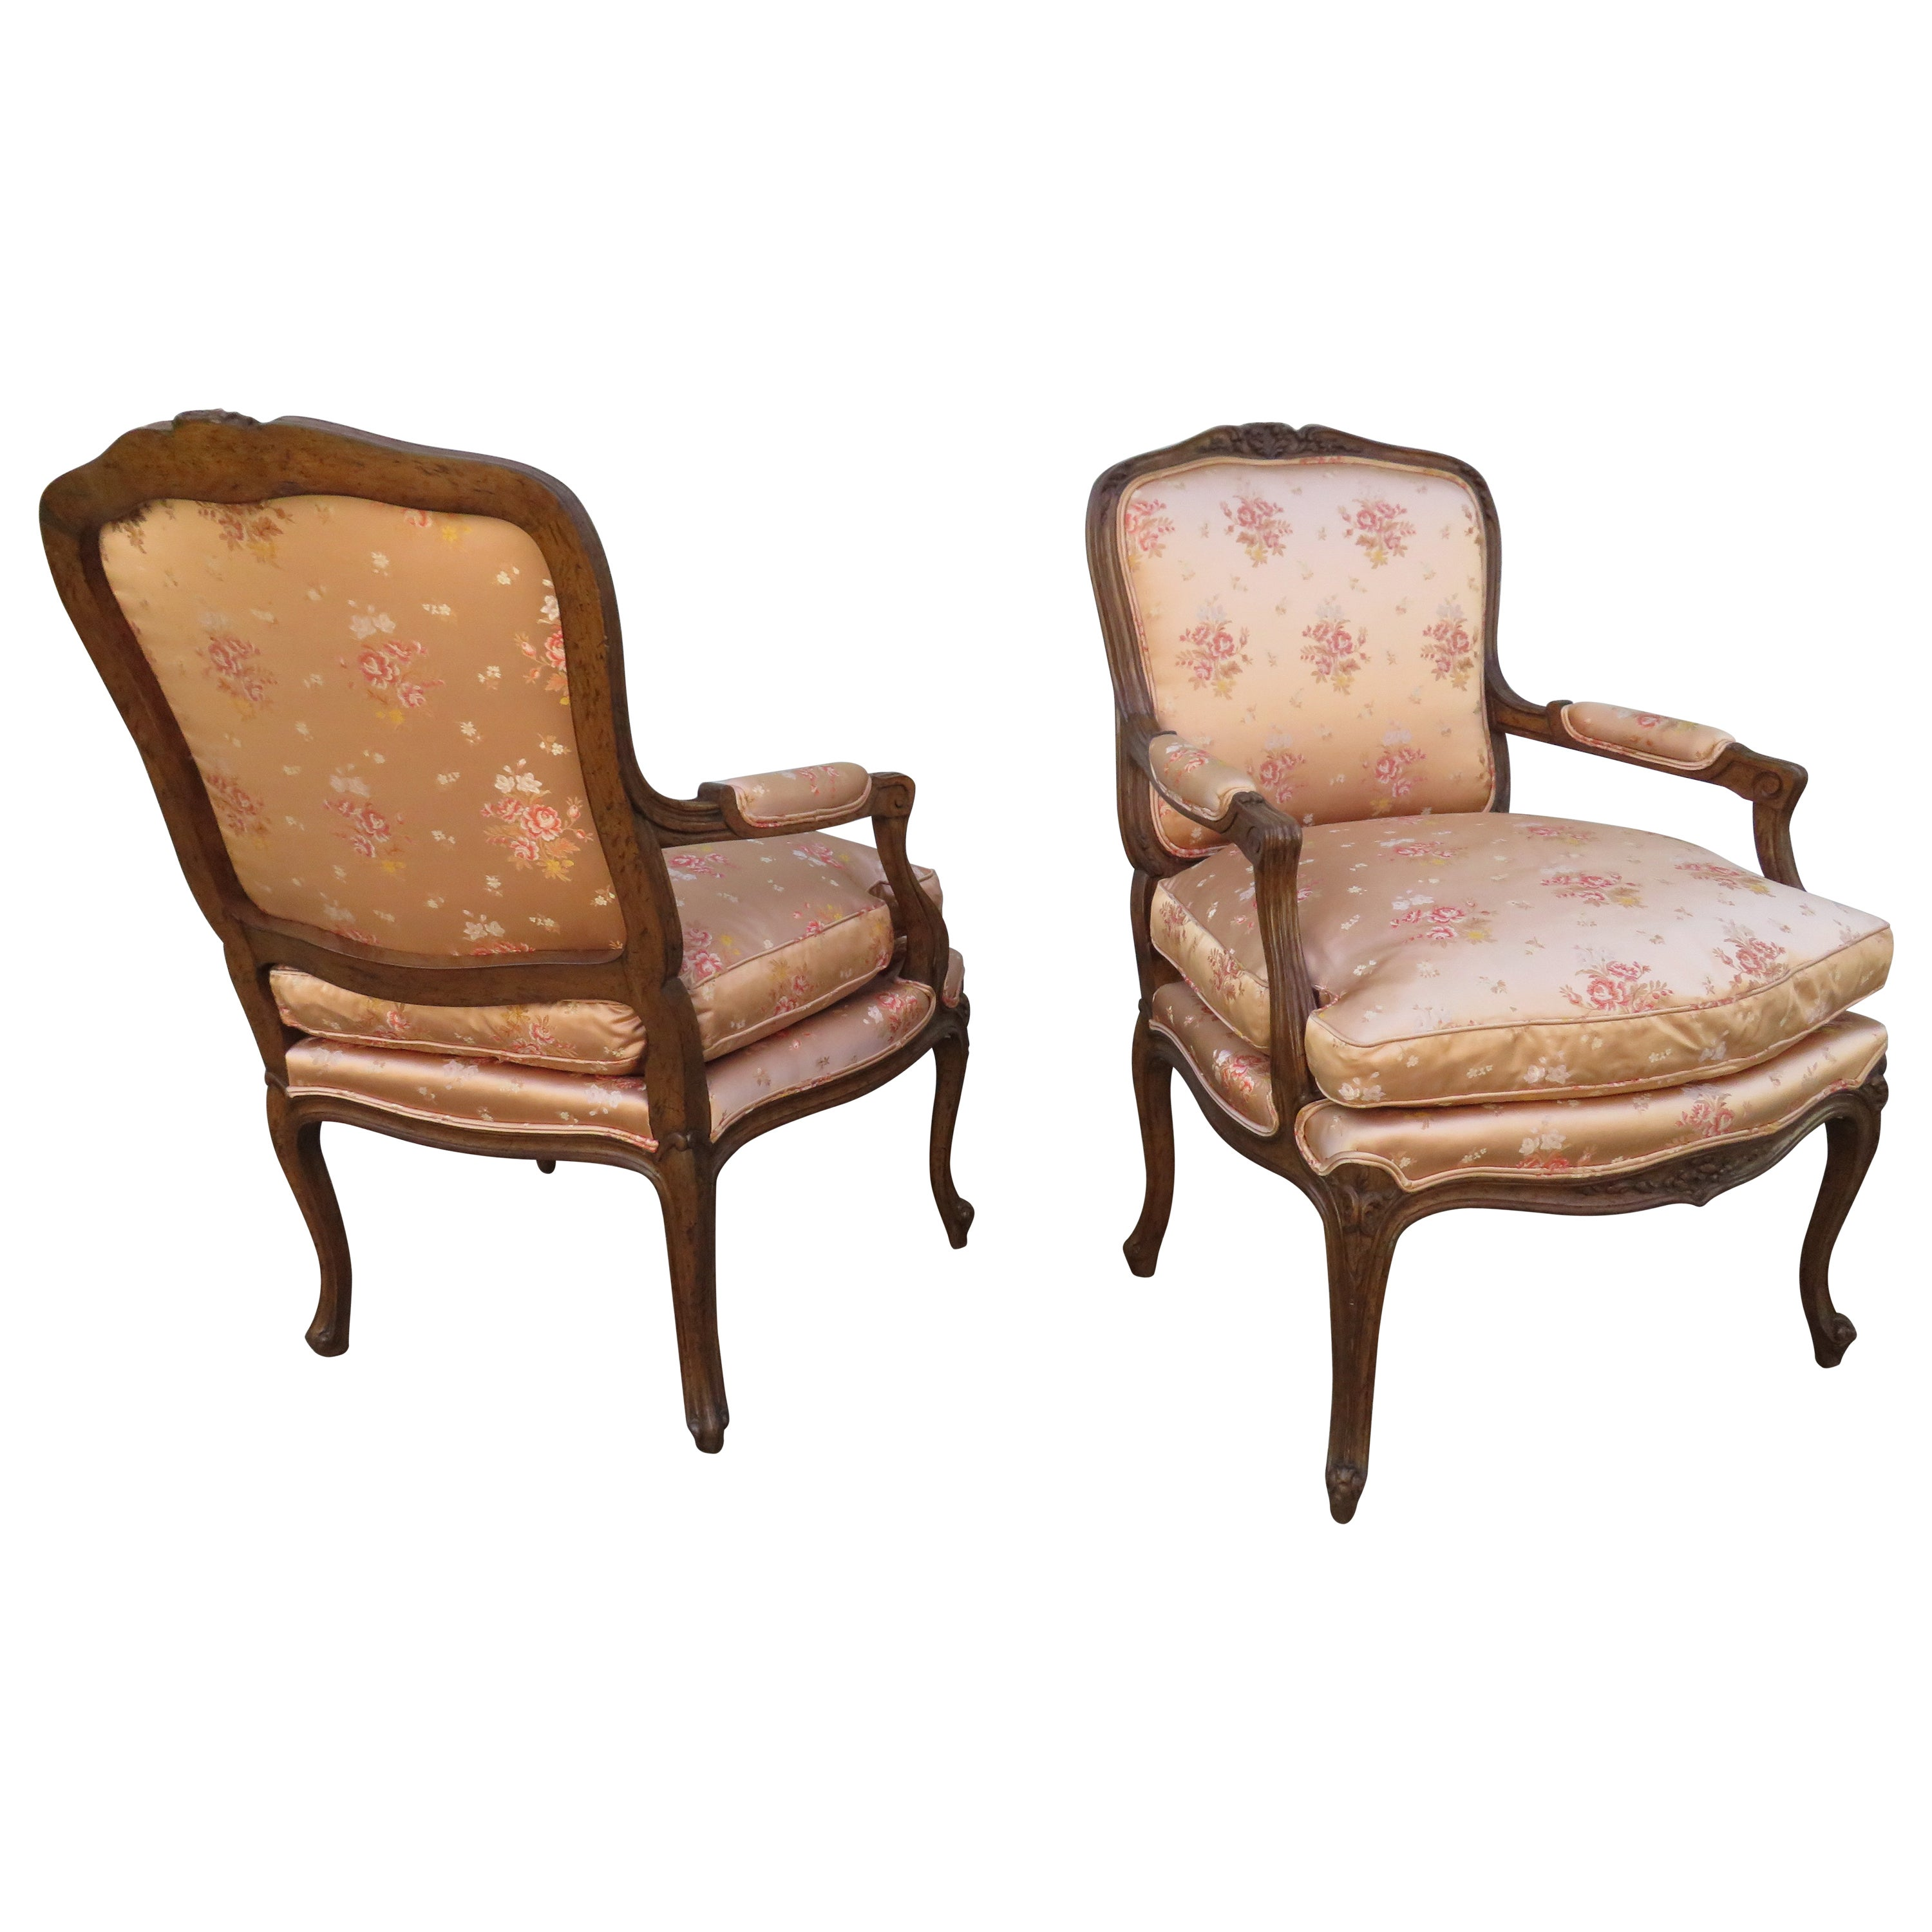 Lovely Pair of 20th Century French Louis XV Bergère Chairs